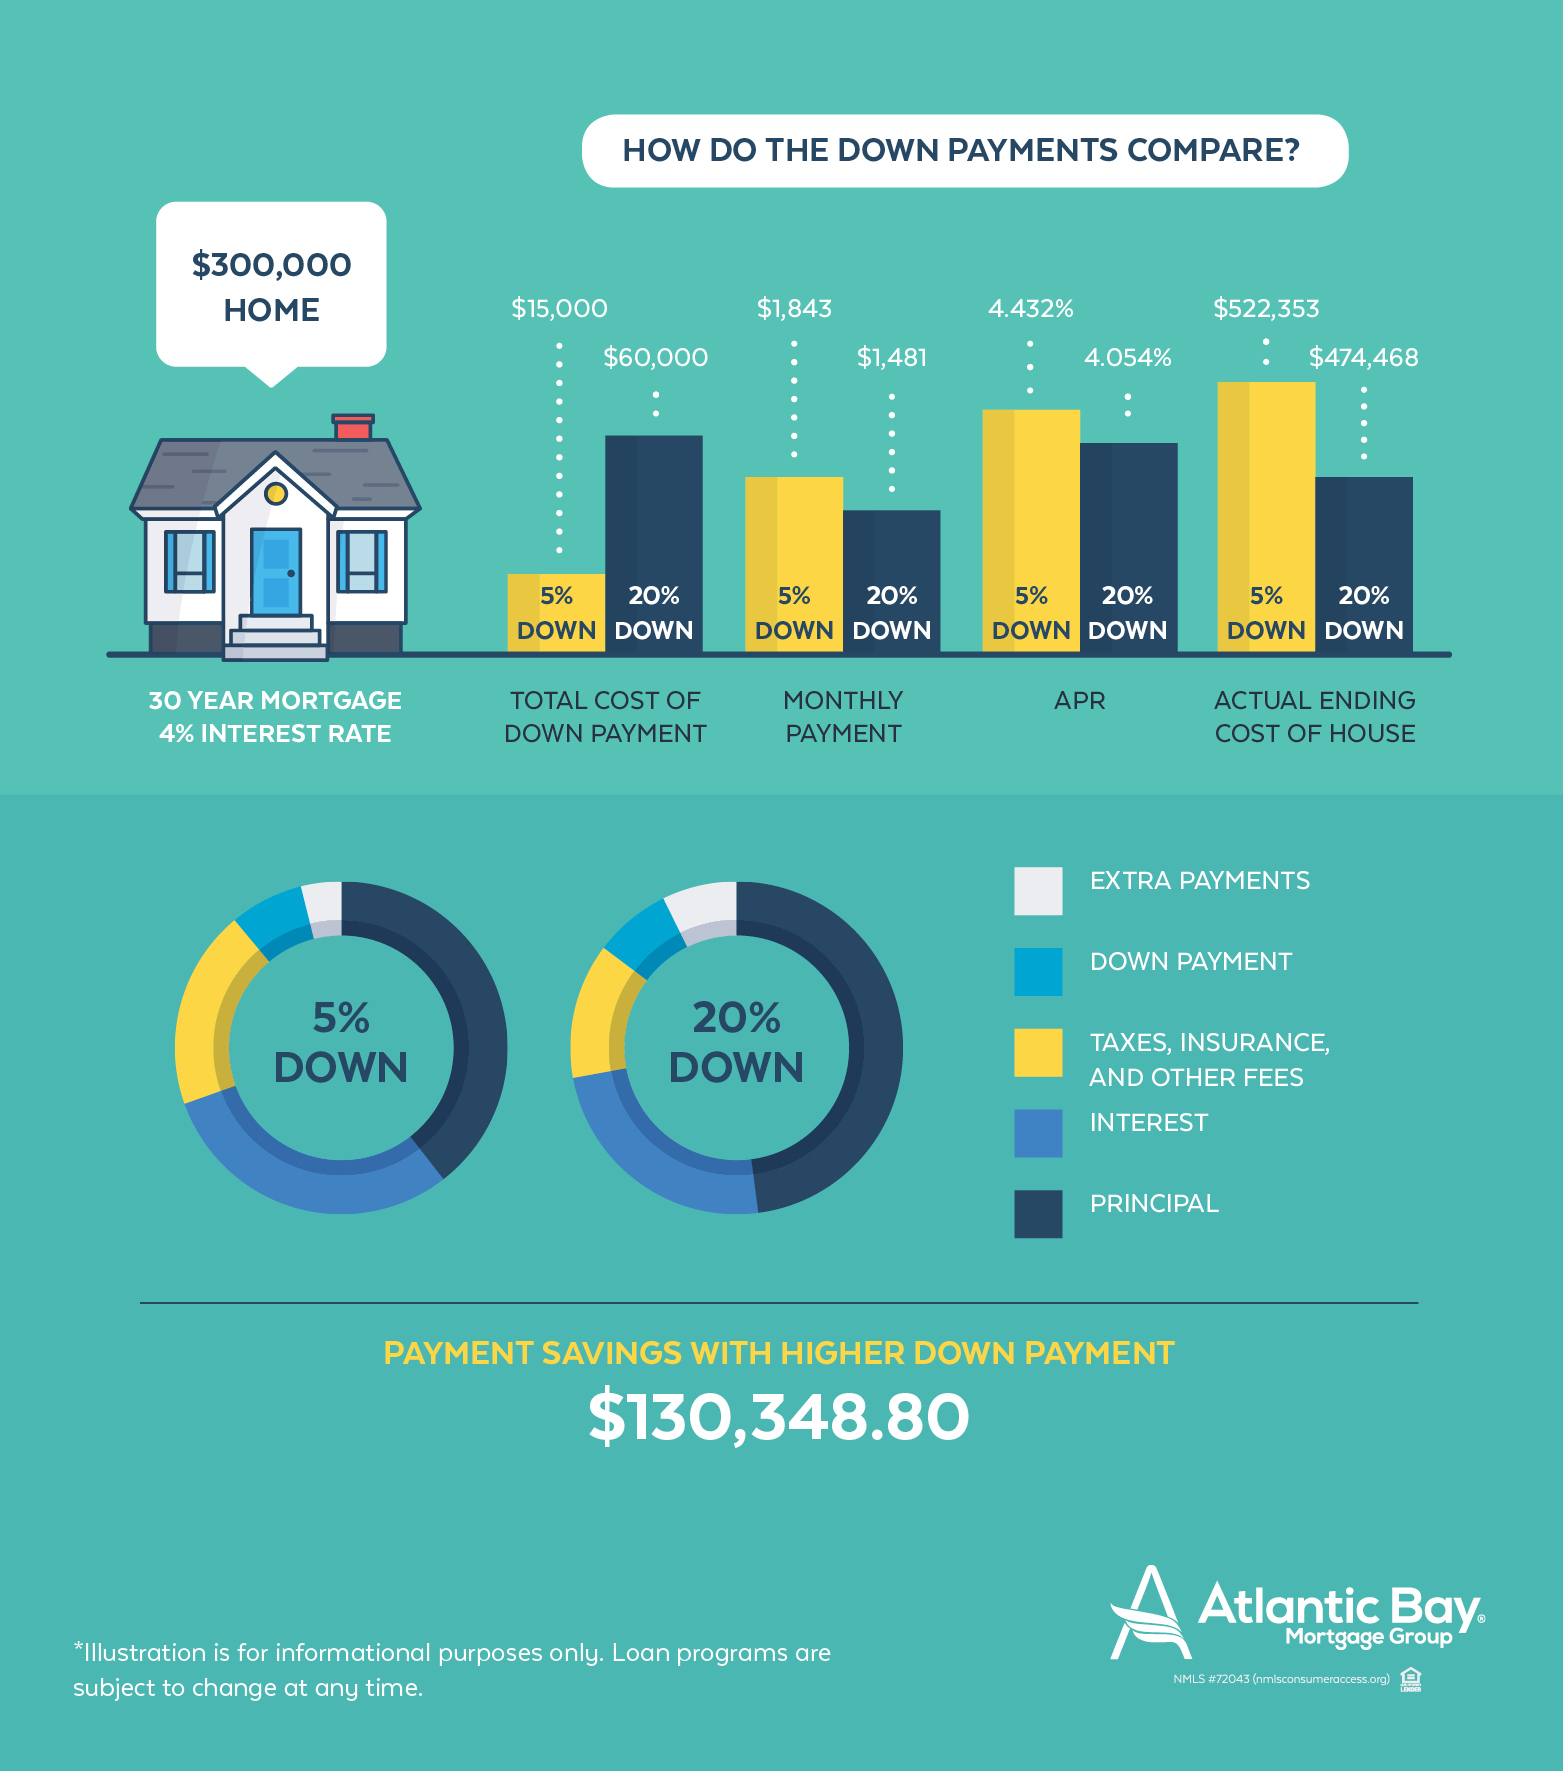 Comparing different down payment amounts